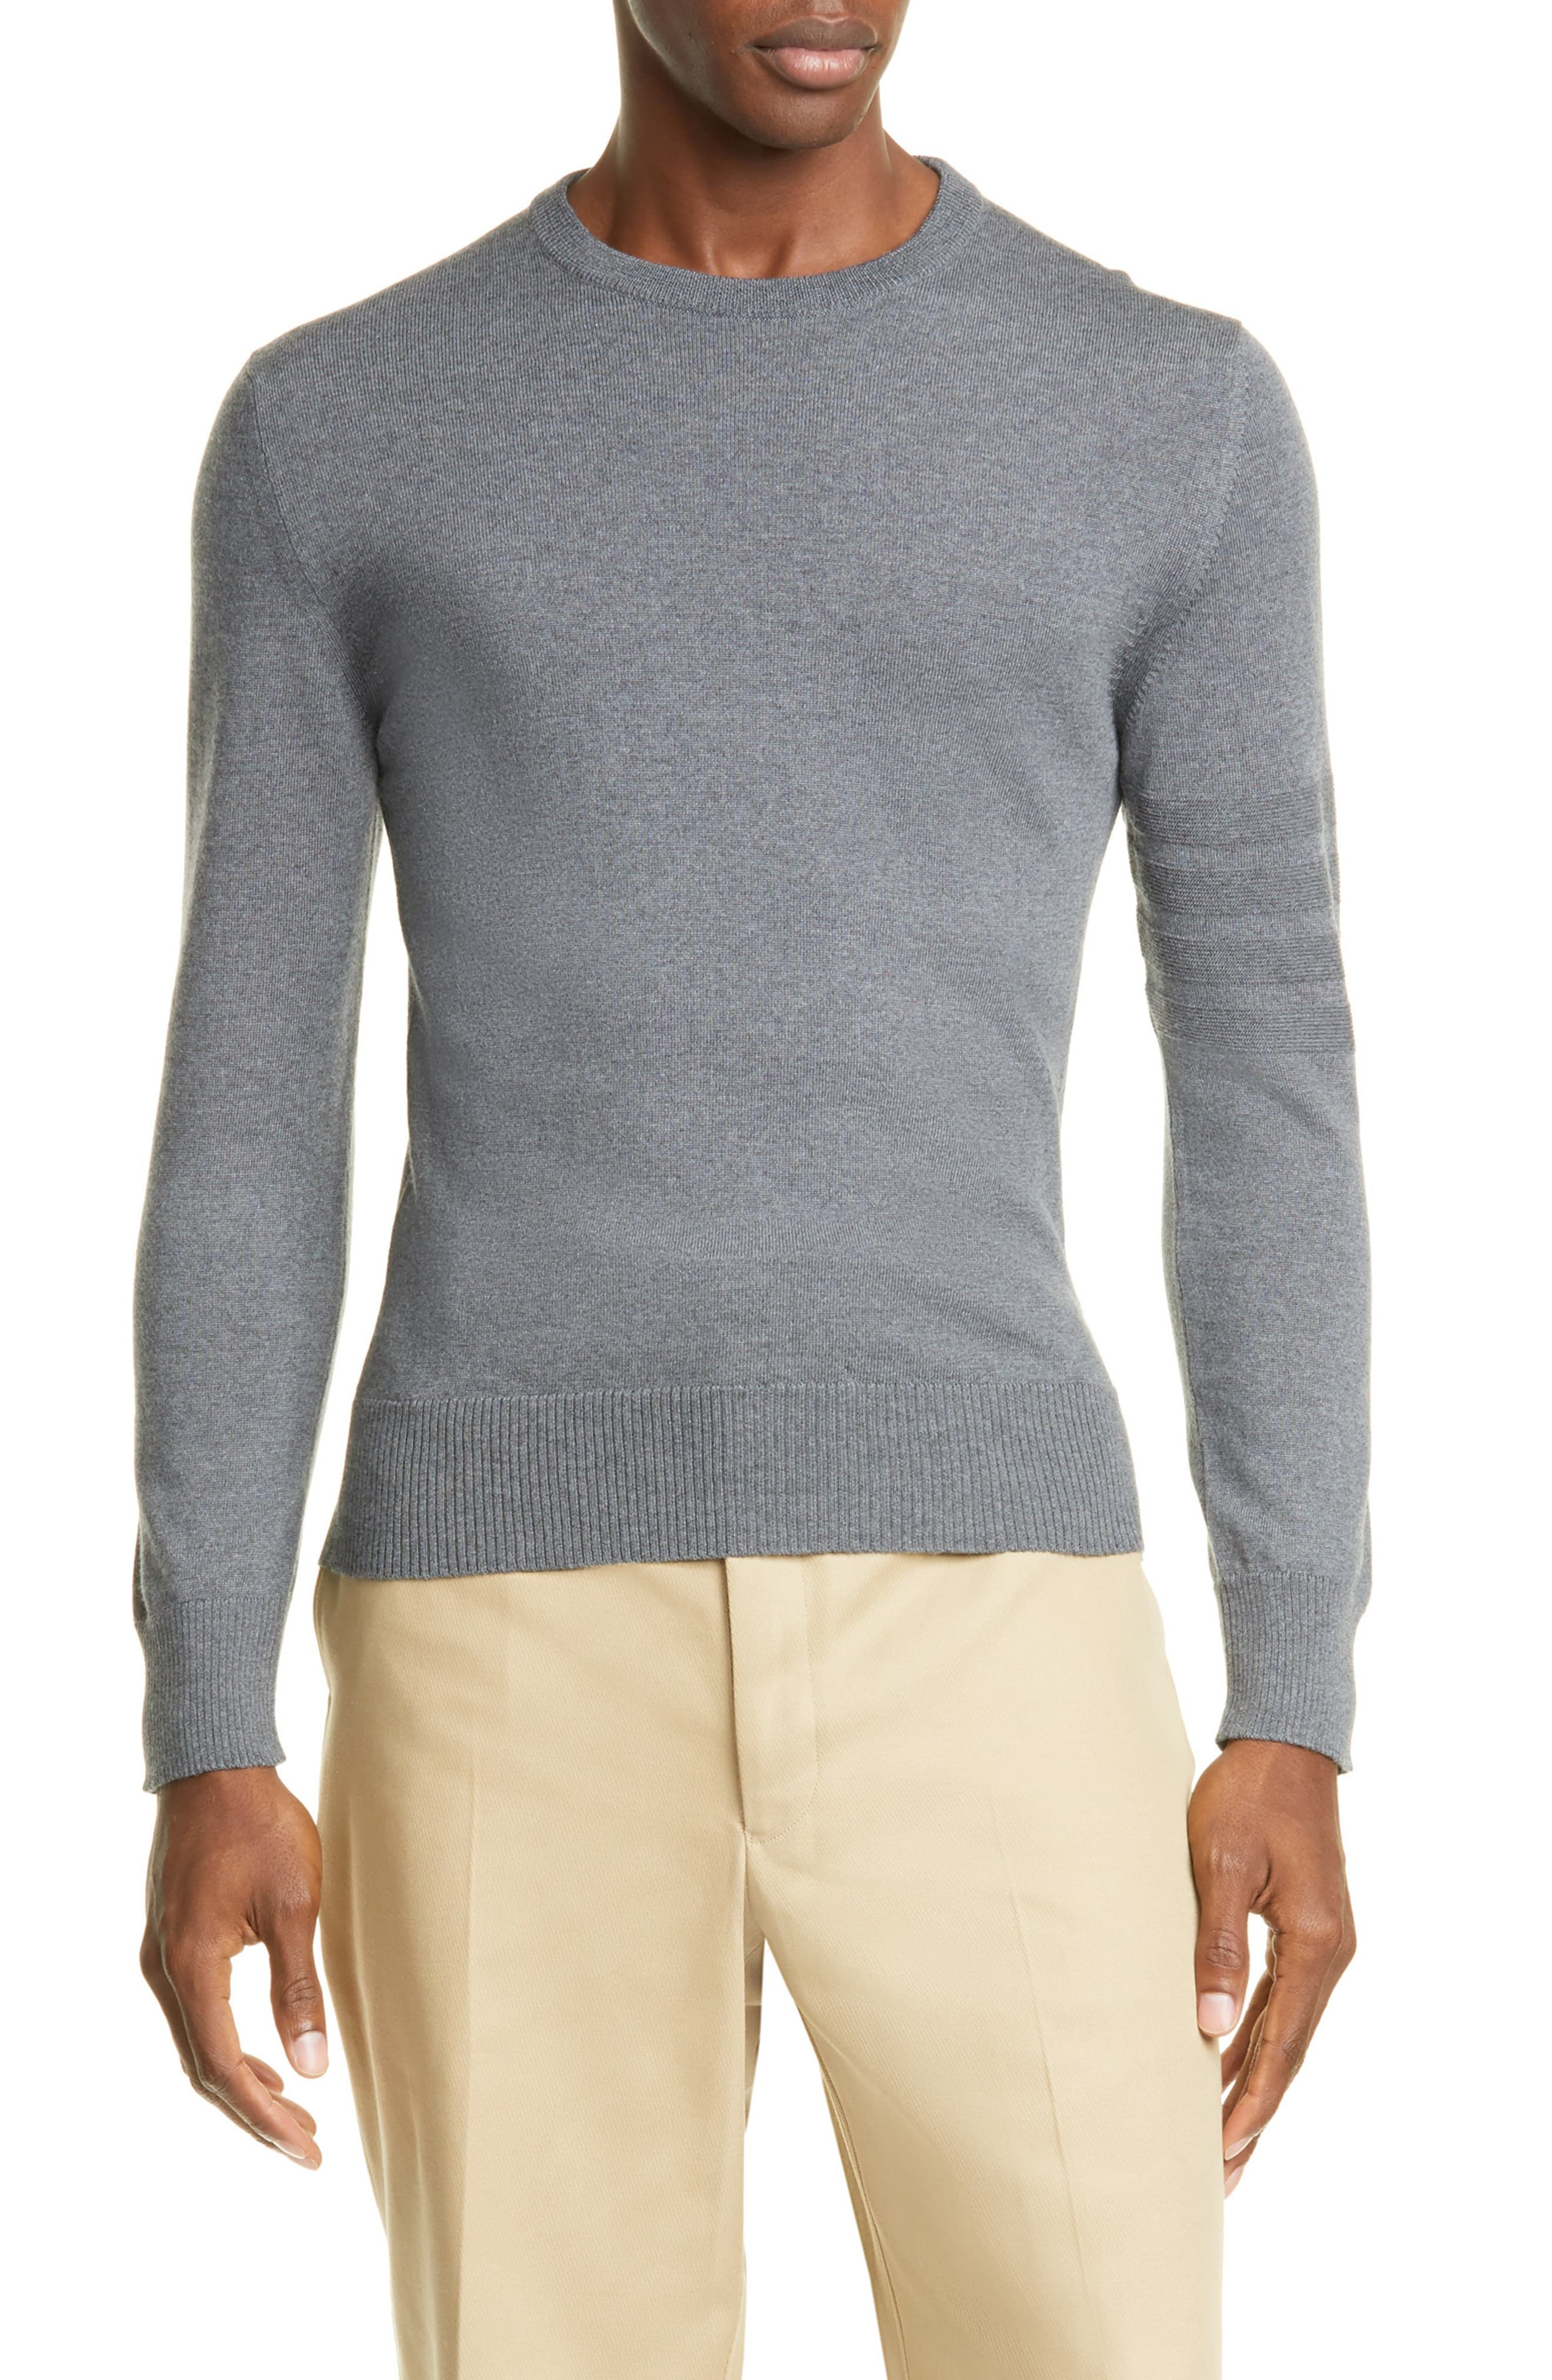 Thom Browne 4 Bar Cotton Sweater | Cotton sweater, Sweaters